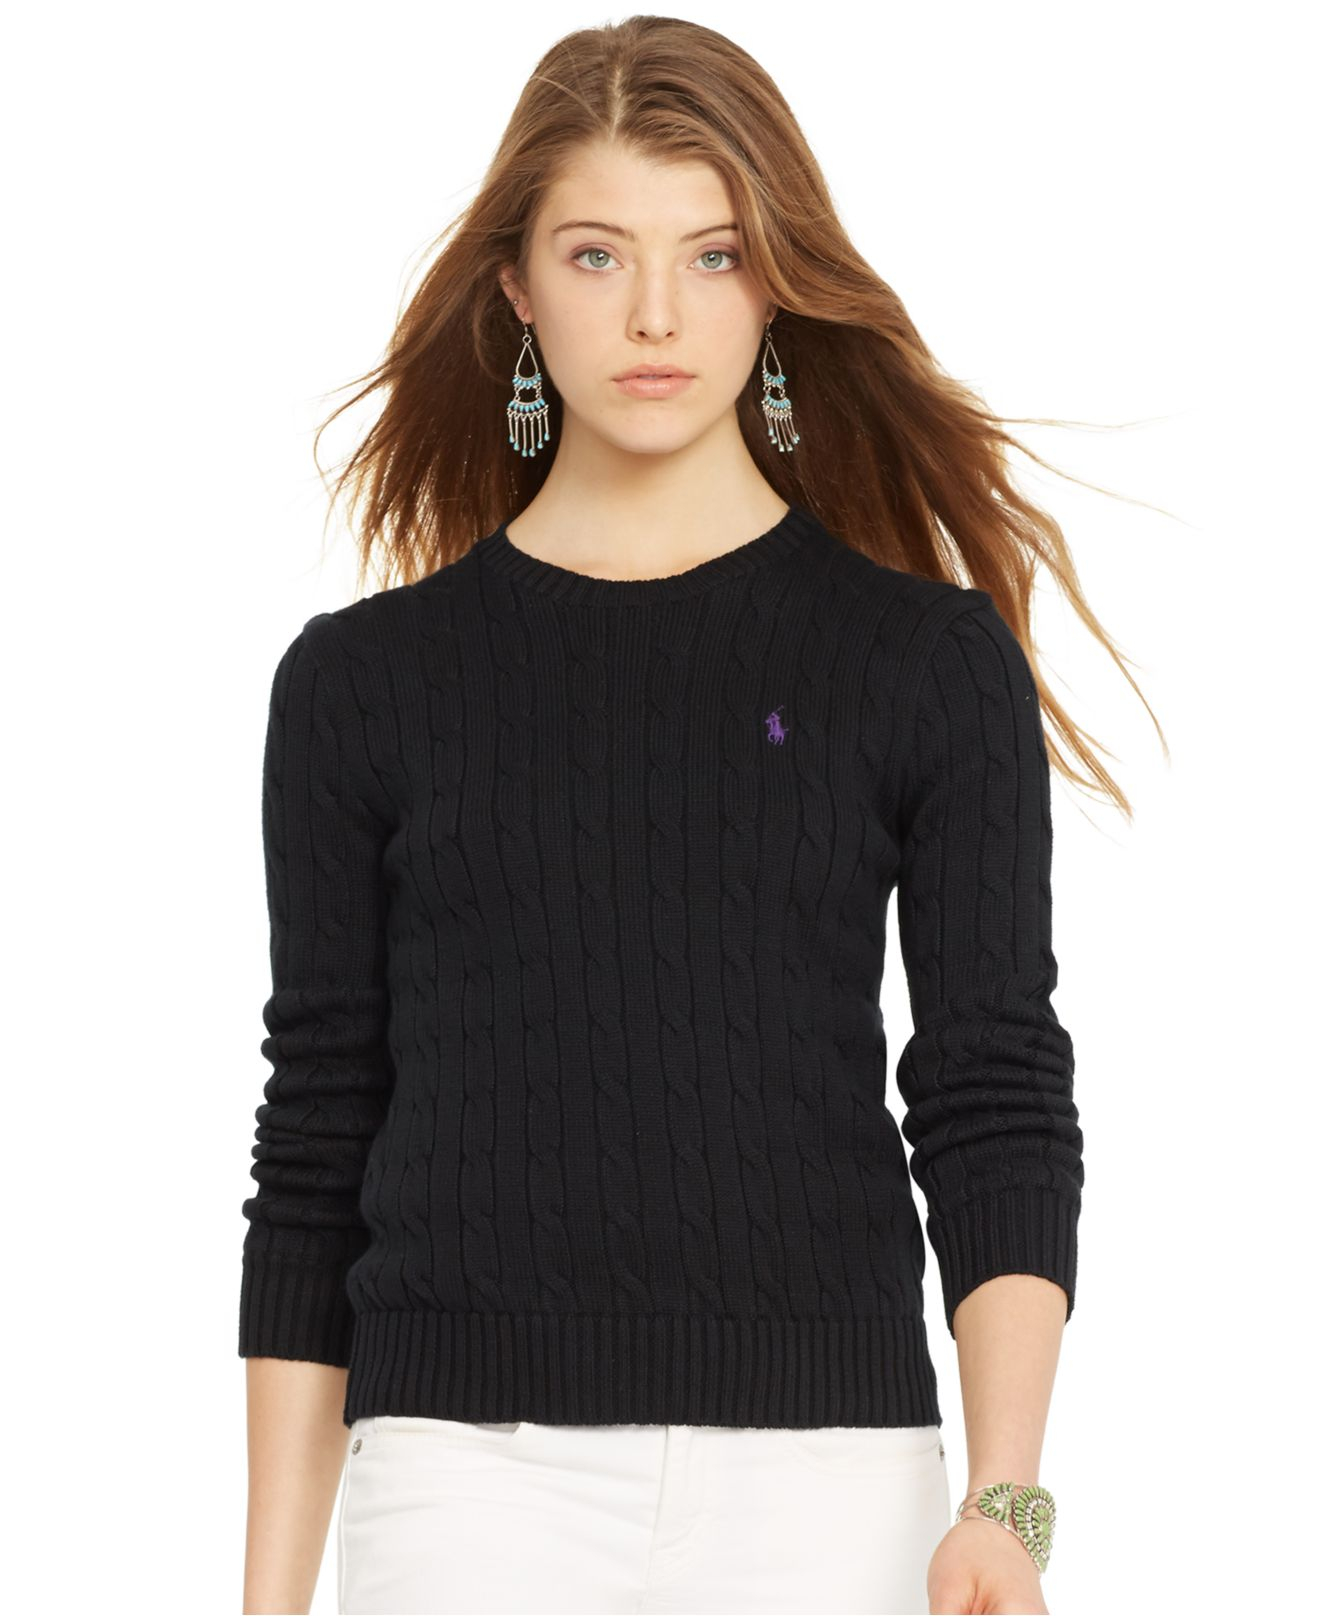 8bc0bd8d5a Polo Ralph Lauren Crew-Neck Cable-Knit Sweater in Black - Lyst